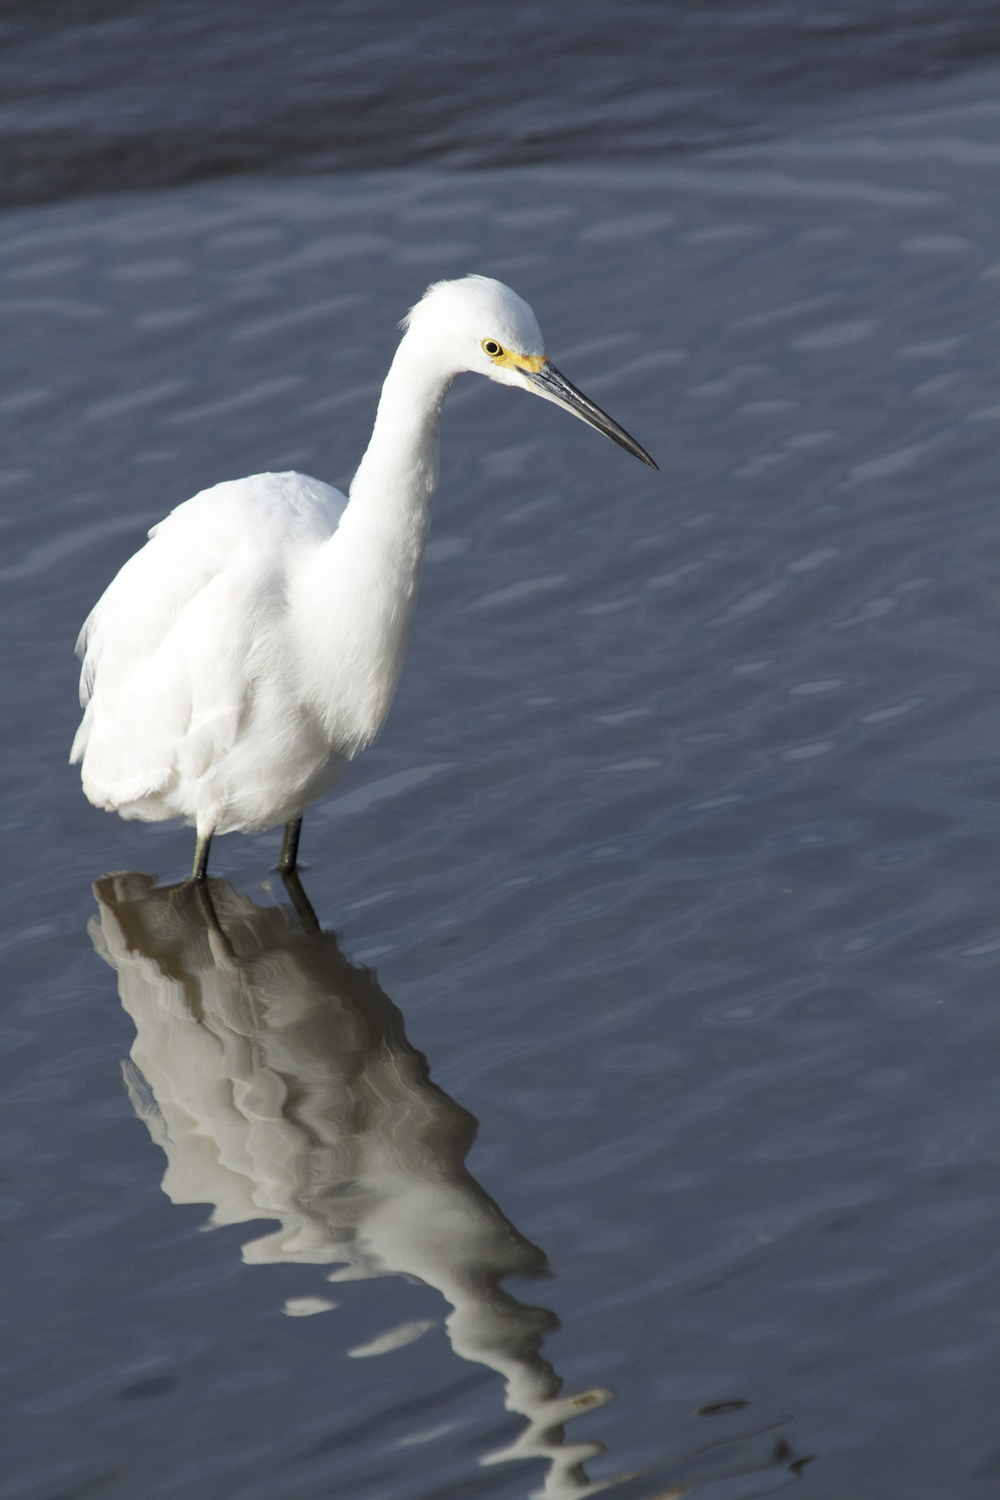 A Snowy Egret reflects on the day!